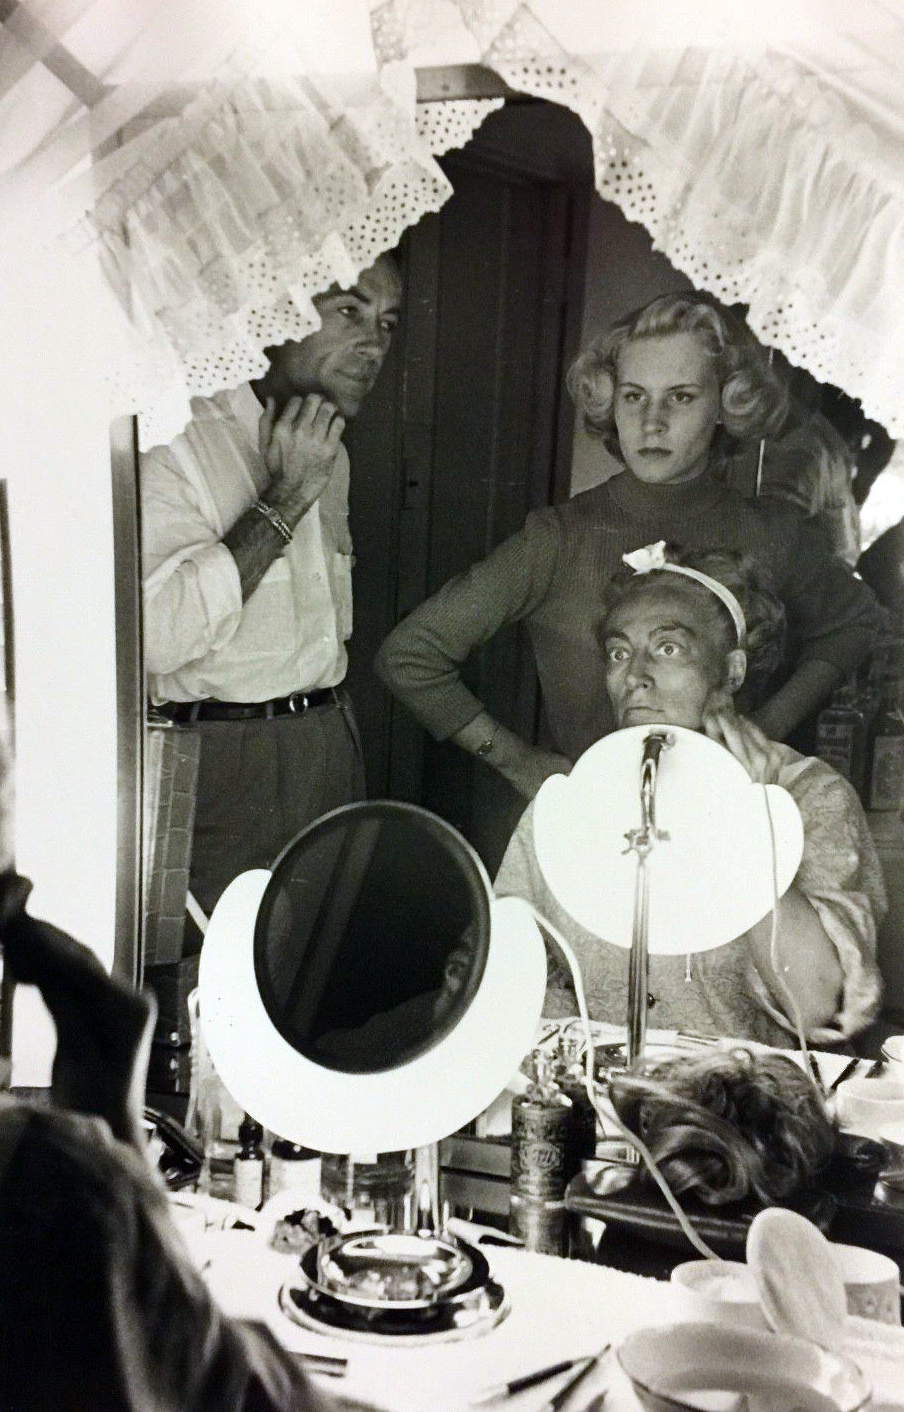 1953. Blackface on the set of 'Torch Song,' with director Walters and daughter Christina looking on.